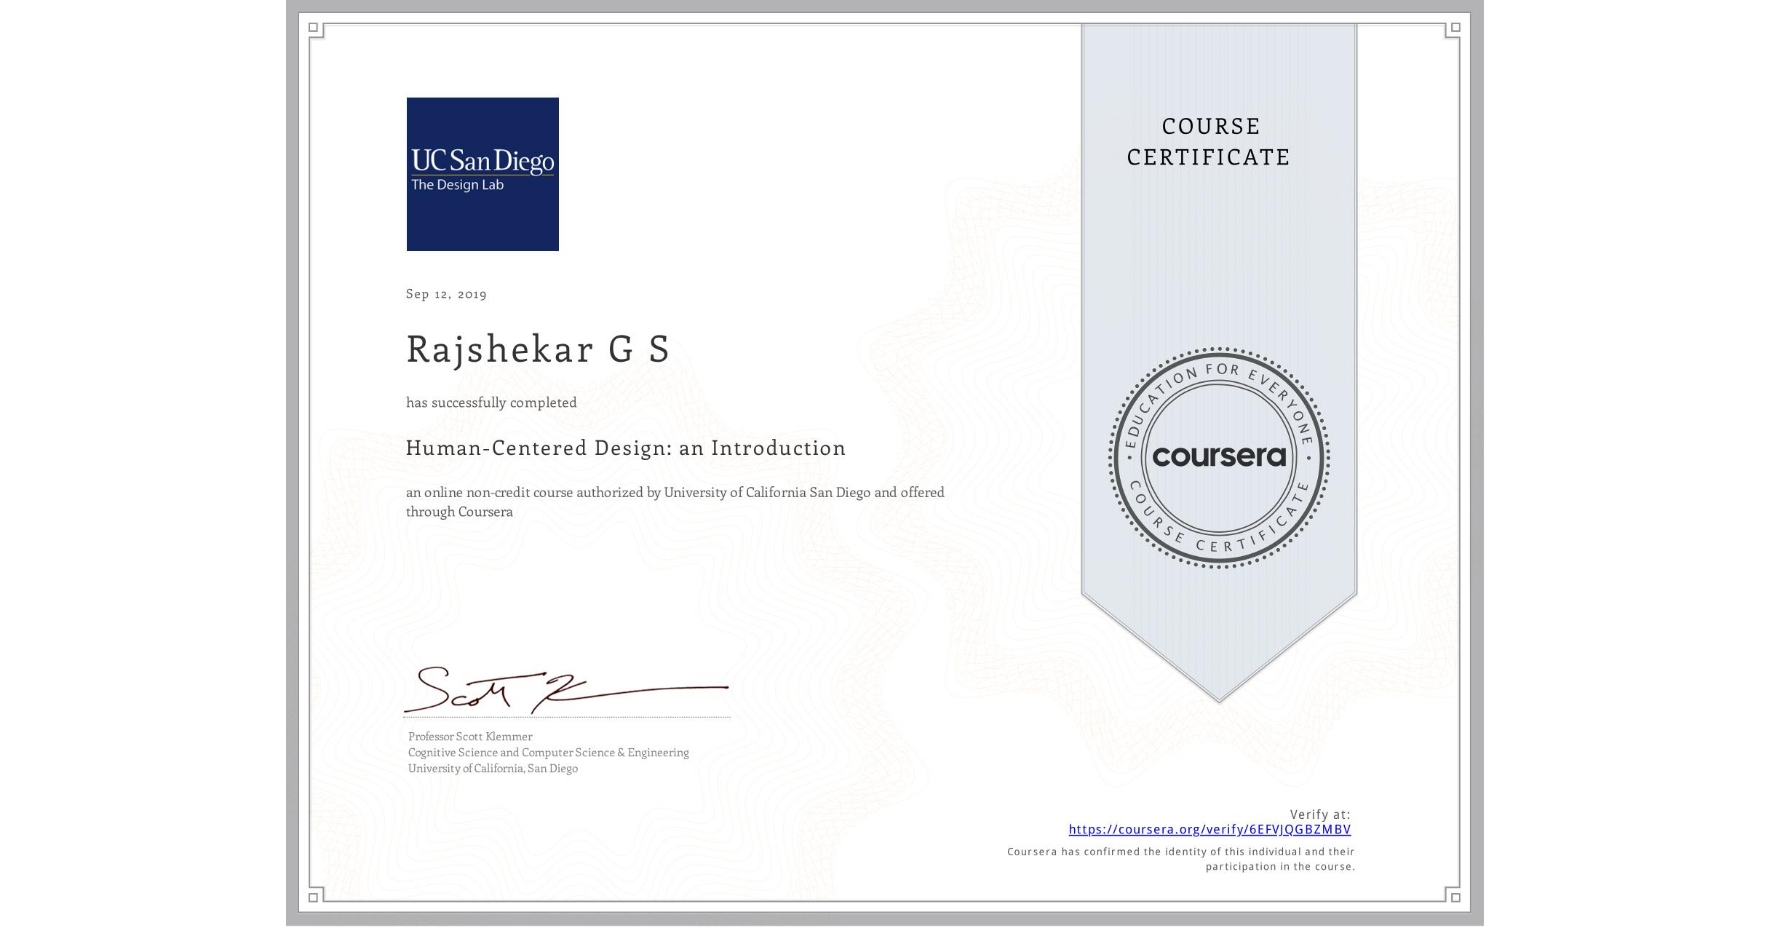 View certificate for Rajshekar G S, Human-Centered Design: an Introduction, an online non-credit course authorized by University of California San Diego and offered through Coursera